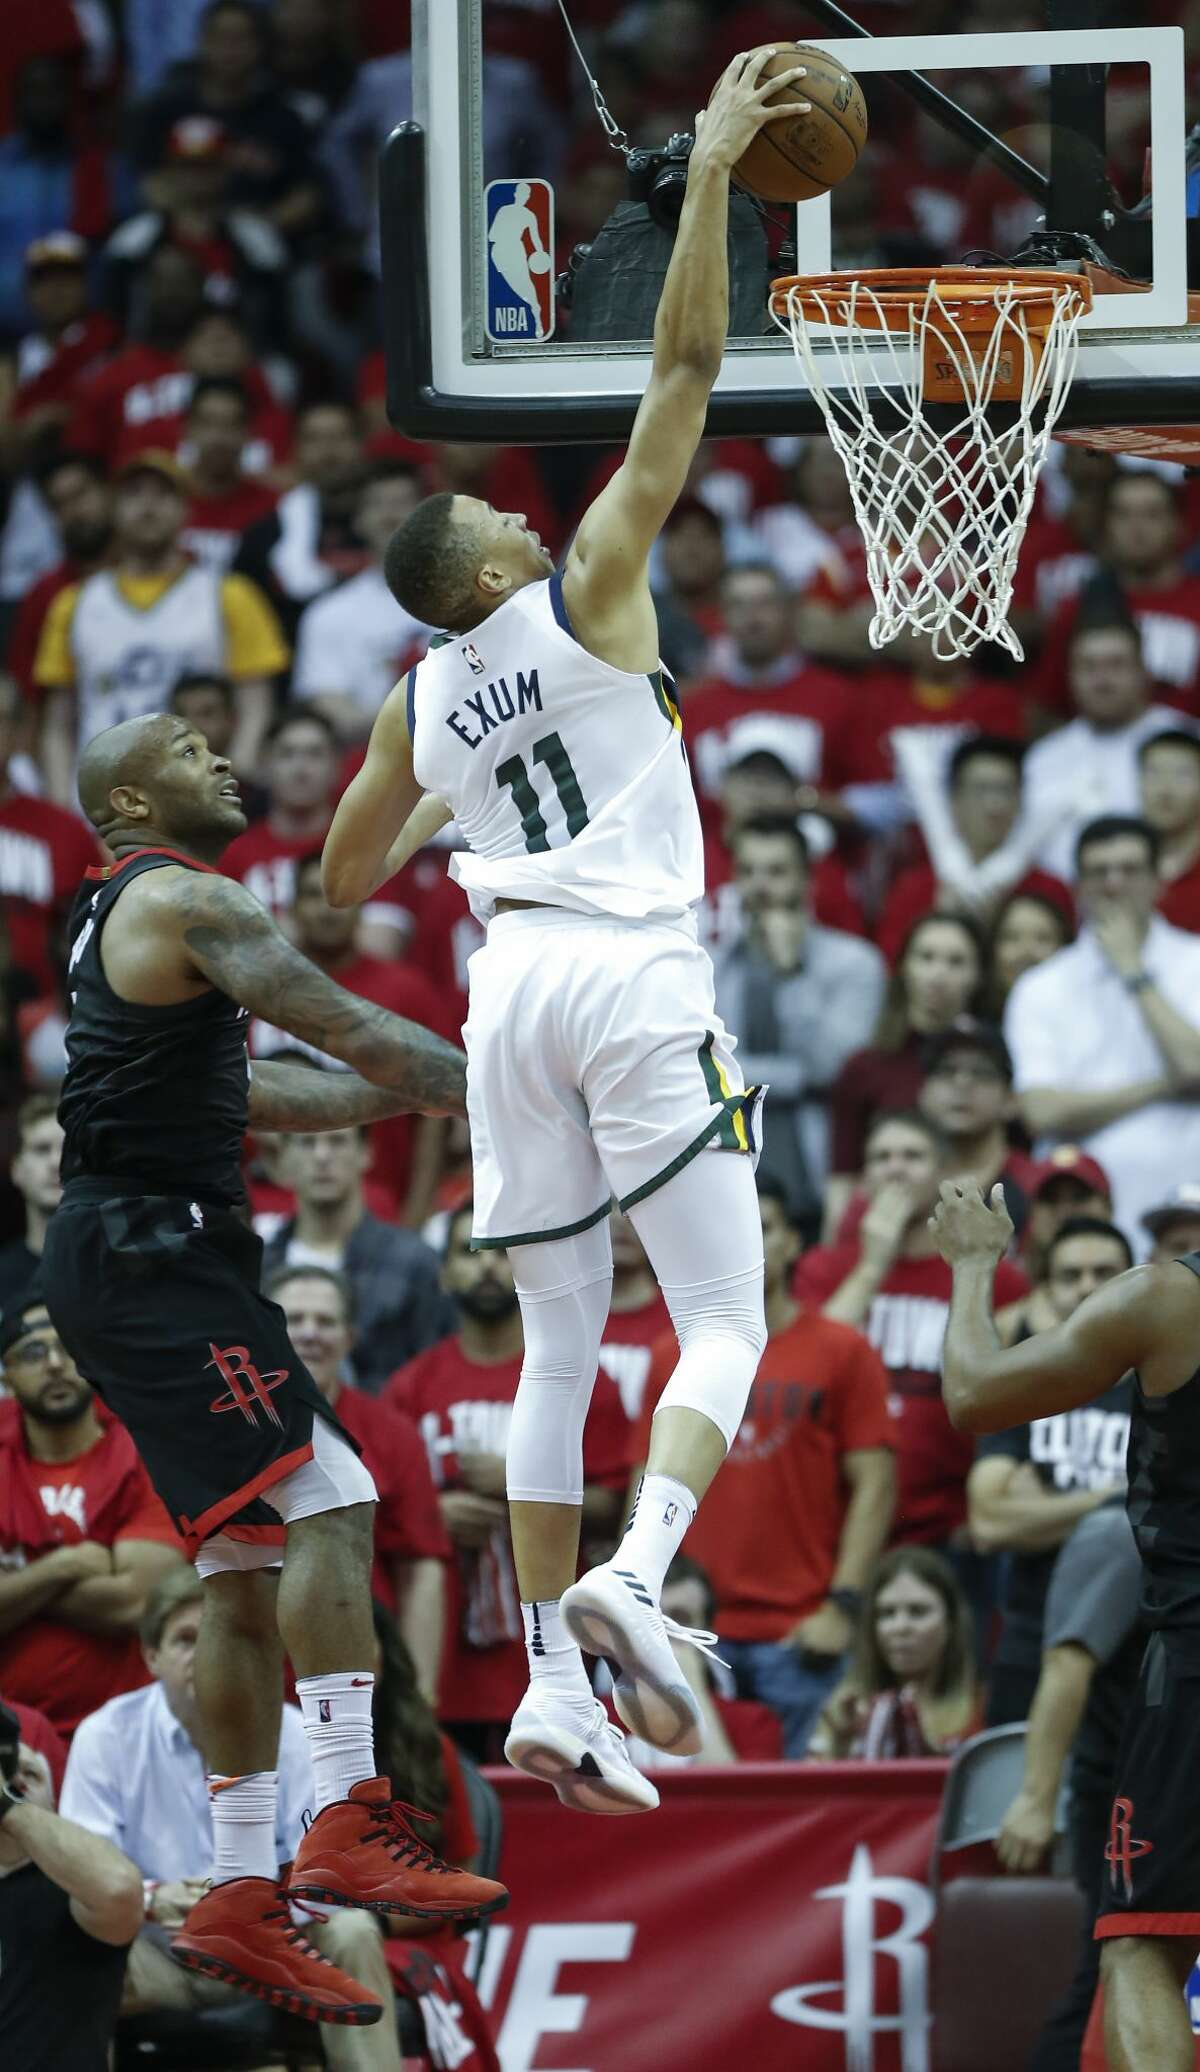 Utah Jazz guard Dante Exum (11) scores on a dunk after driving past Houston Rockets forward PJ Tucker (4) during the second half in Game 2 of an NBA basketball second-round playoff series at Toyota Center on Wednesday, May 2, 2018, in Houston. ( Brett Coomer / Houston Chronicle )